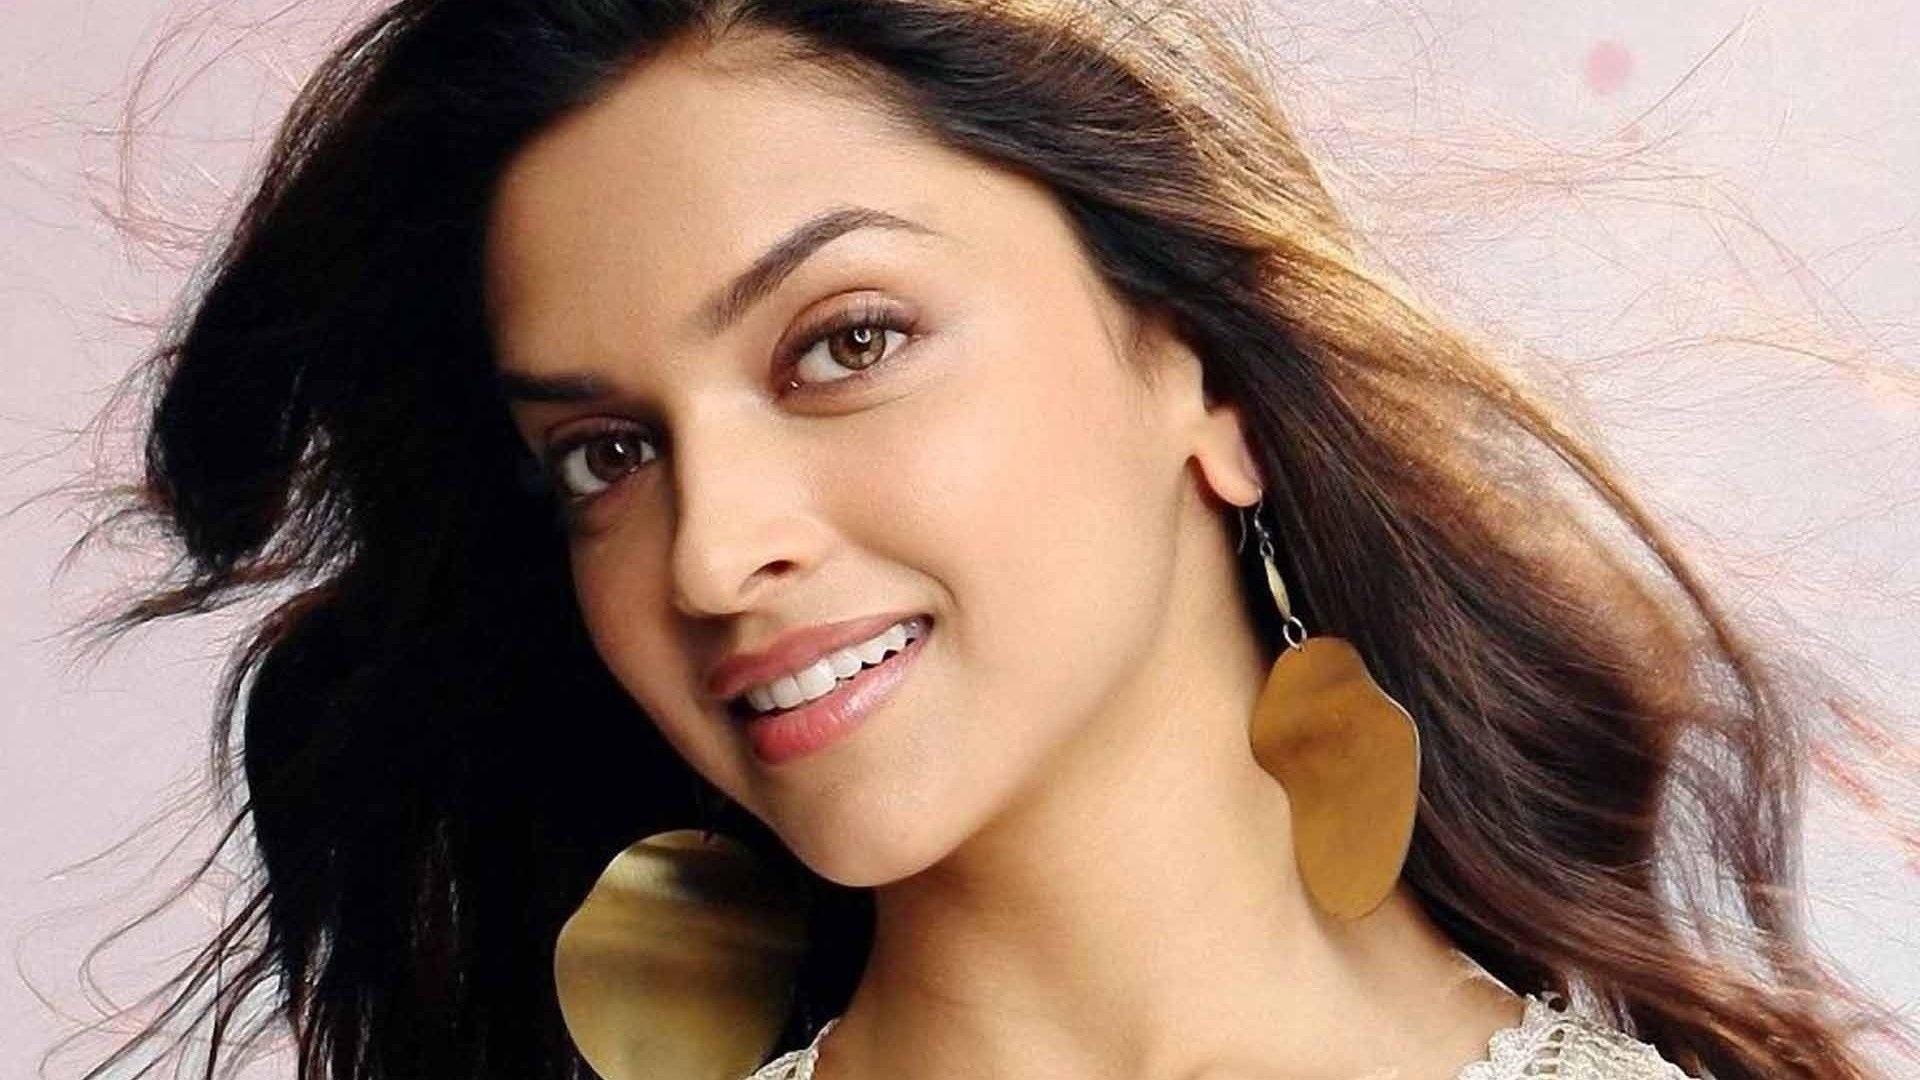 hd wallpapers for bollywood actress - wallpaper cave